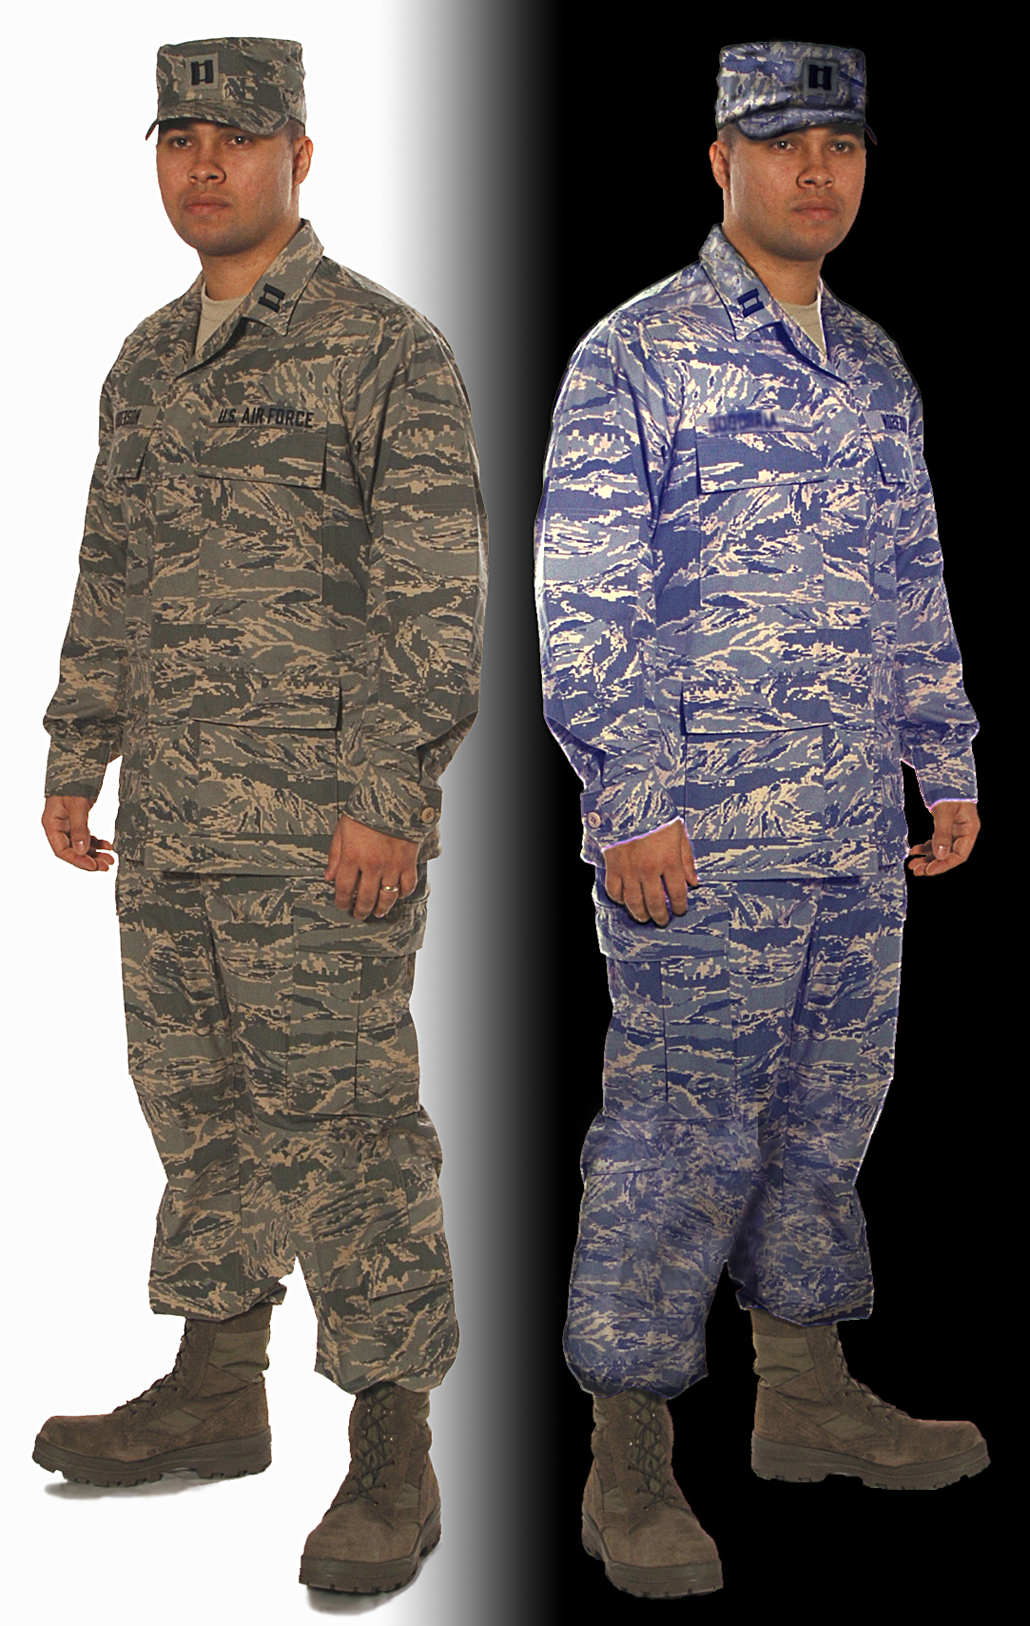 298061e35dd HOW NOT TO CONVERT YOUR AIRMAN BATTLE UNIFORMS INTO GLOW-IN-THE-DARK  WIDOW-MAKERS